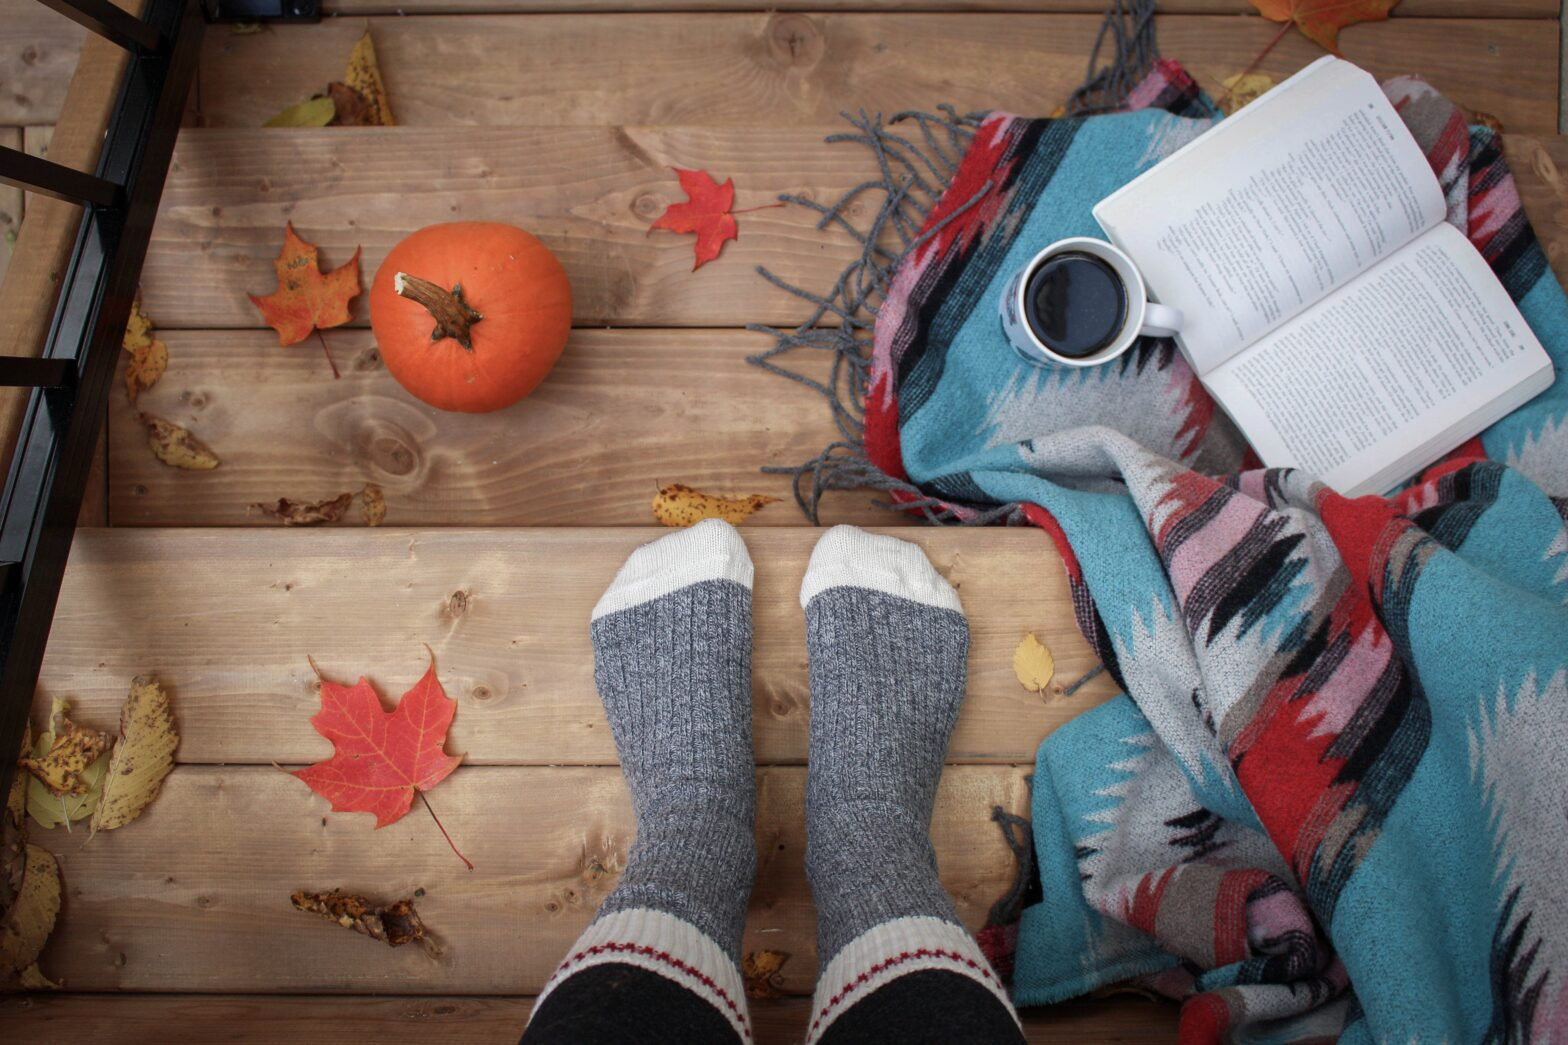 Fall image with book, pumpkin, and socked feet